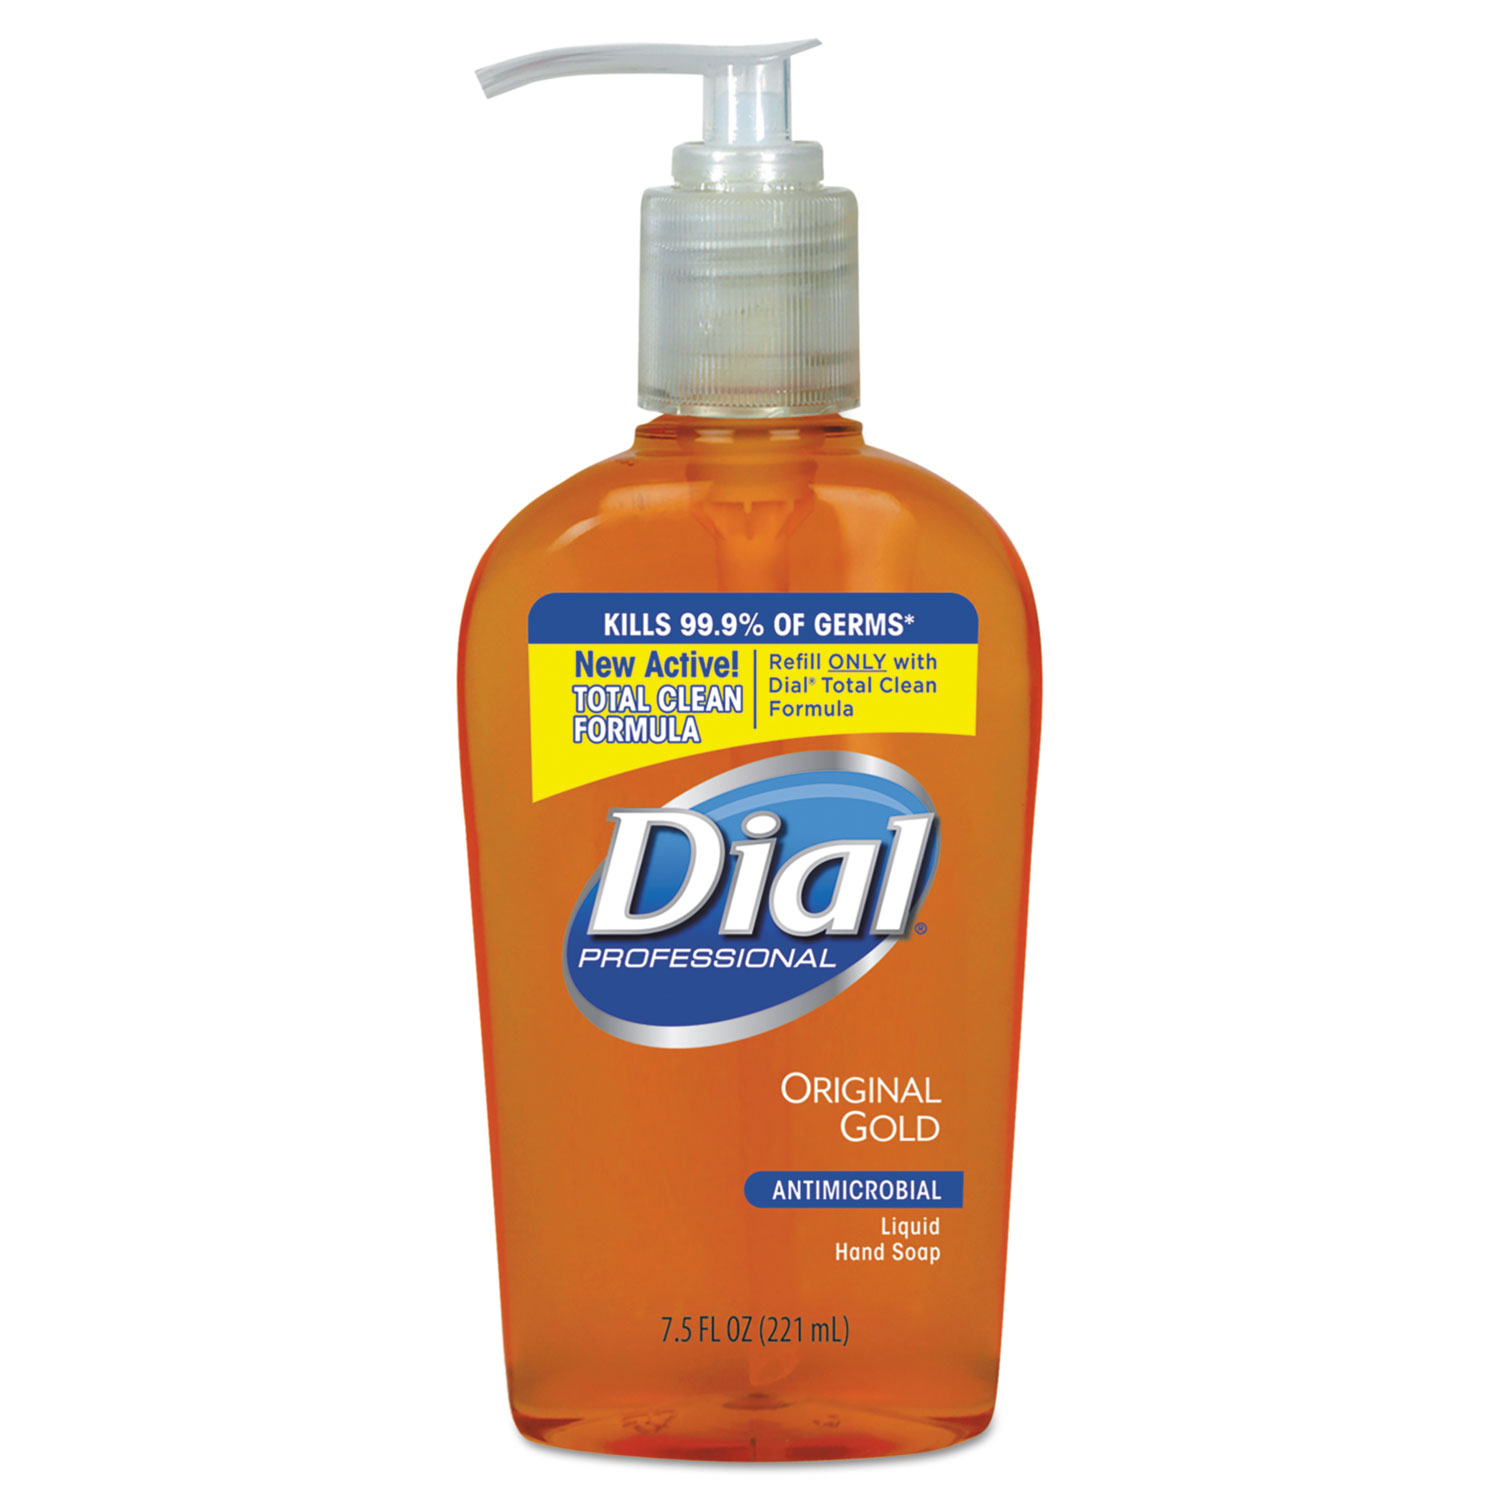 Dial Gold Antimicrobial Hand Soap - Floral Fragrance, 7.5 oz Pump Bottle, 12/Case